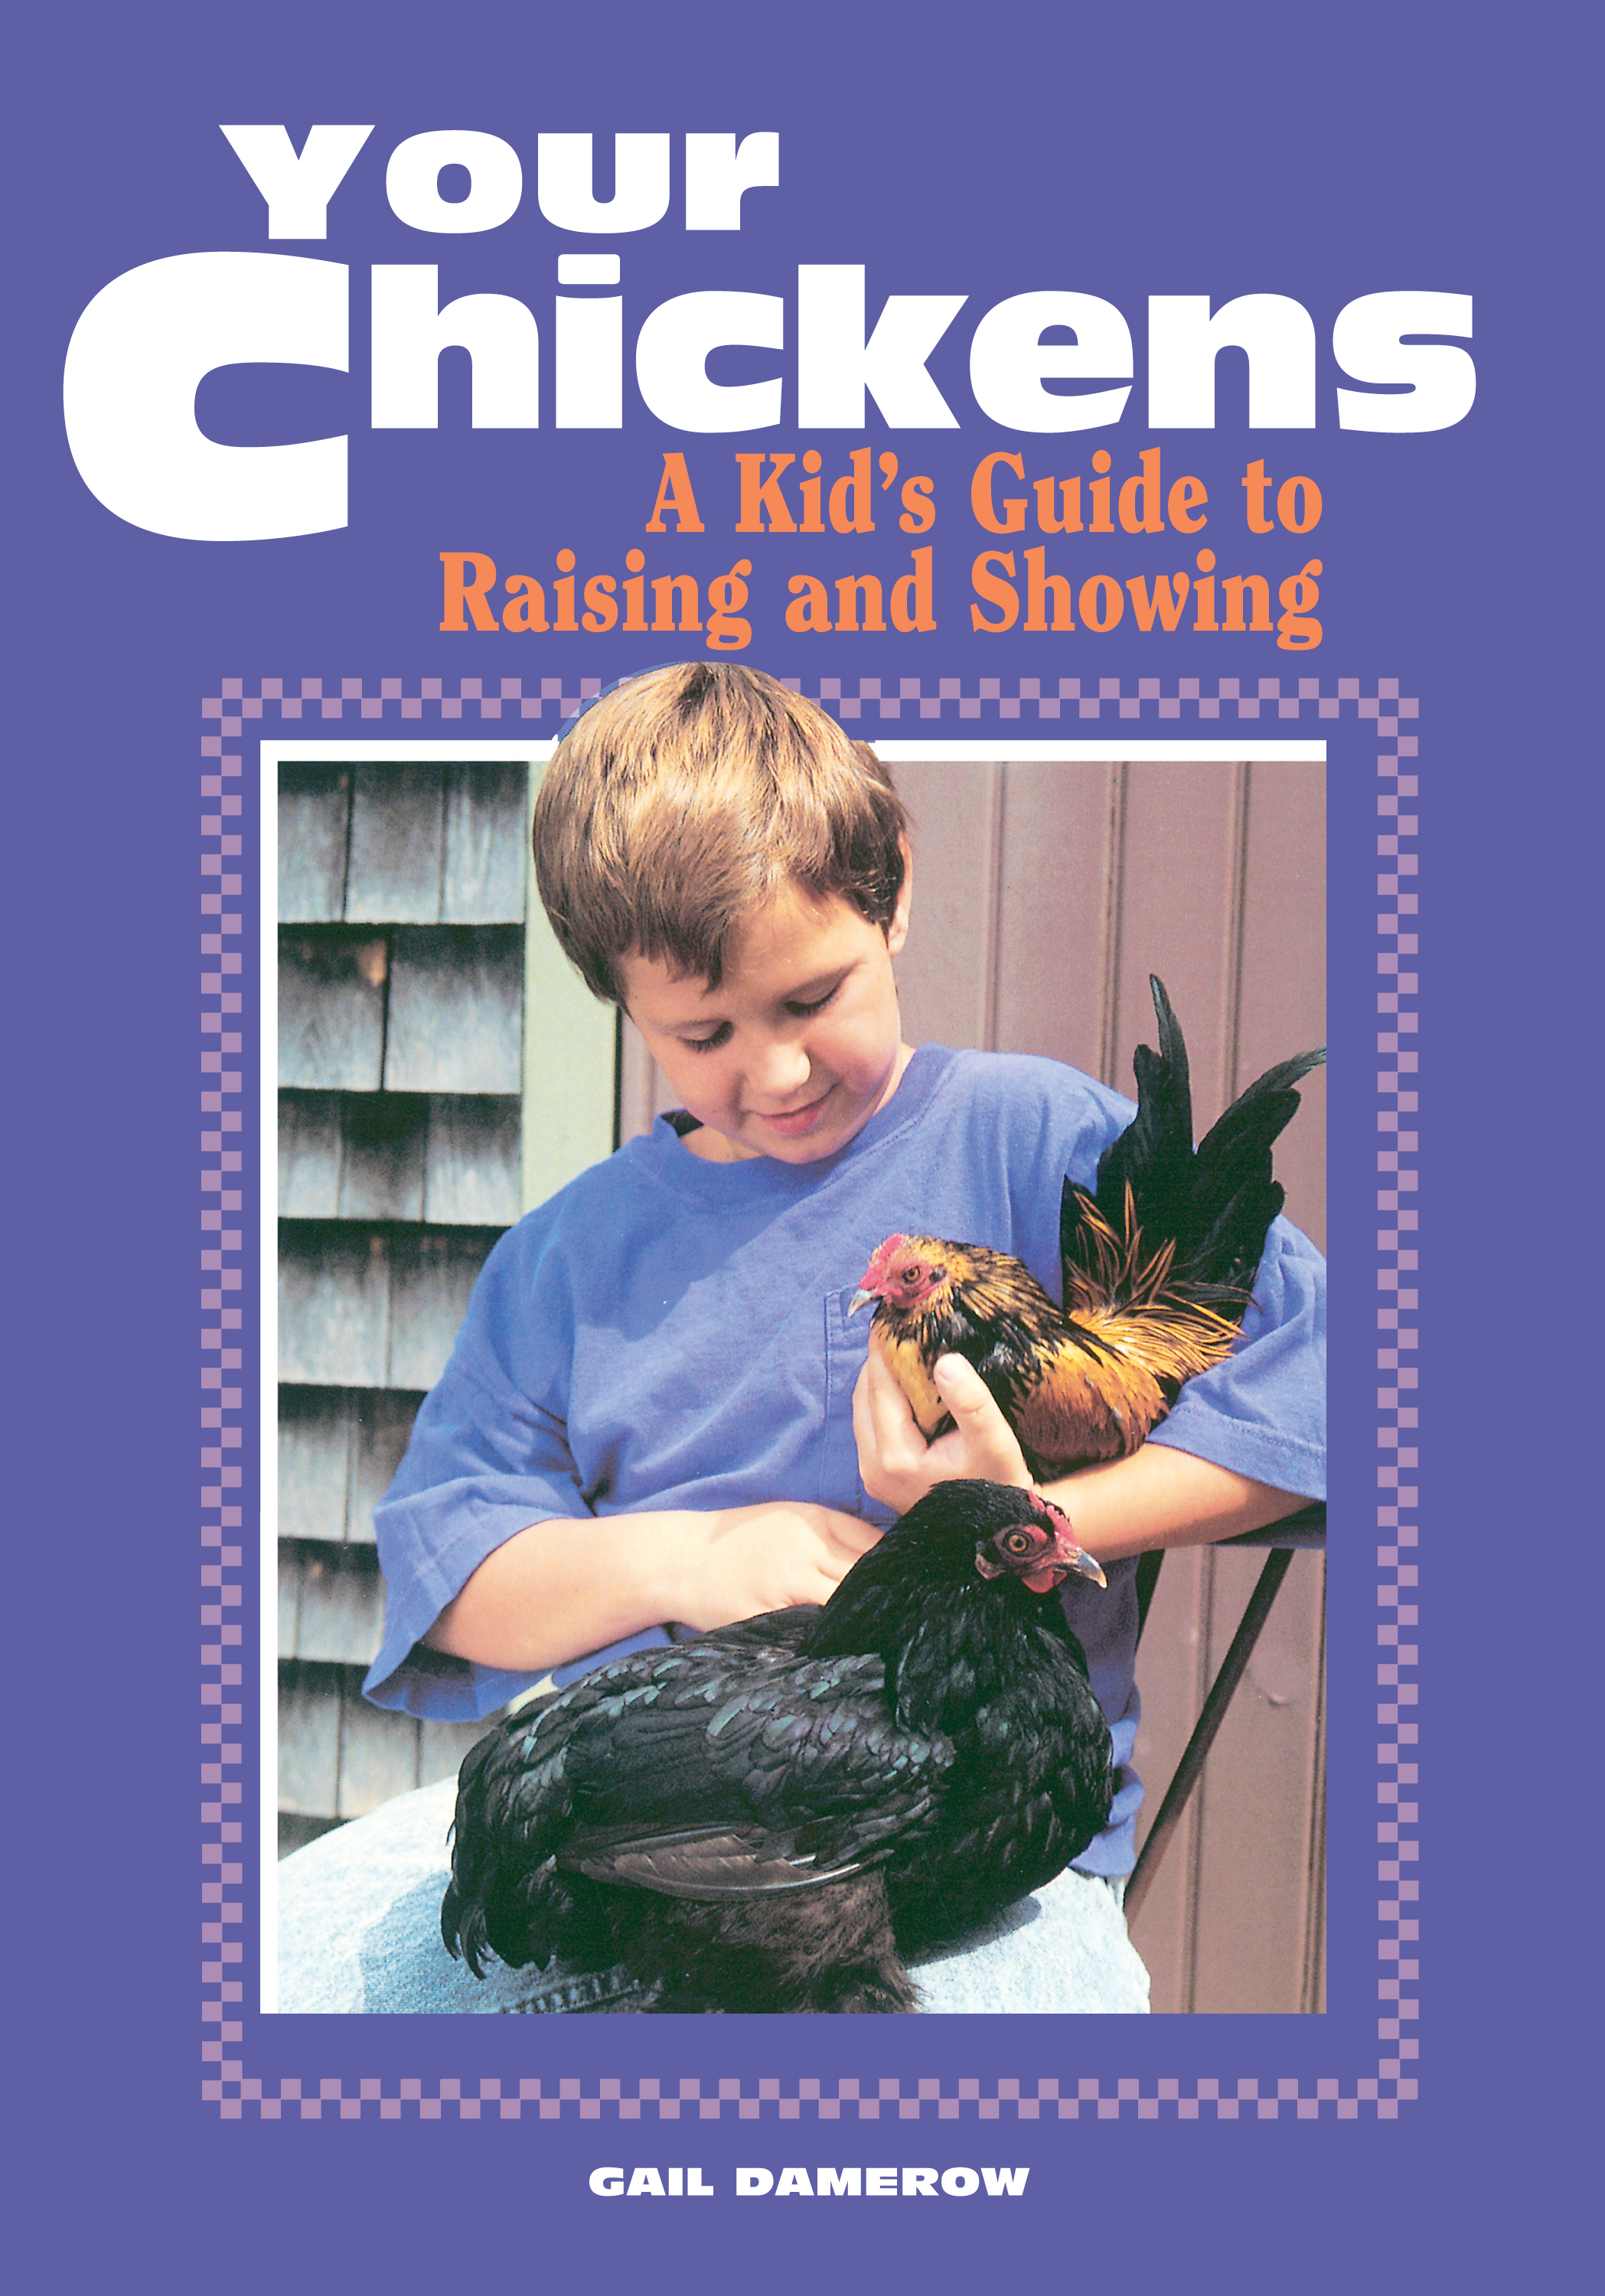 Your Chickens A Kid's Guide to Raising and Showing - Gail Damerow